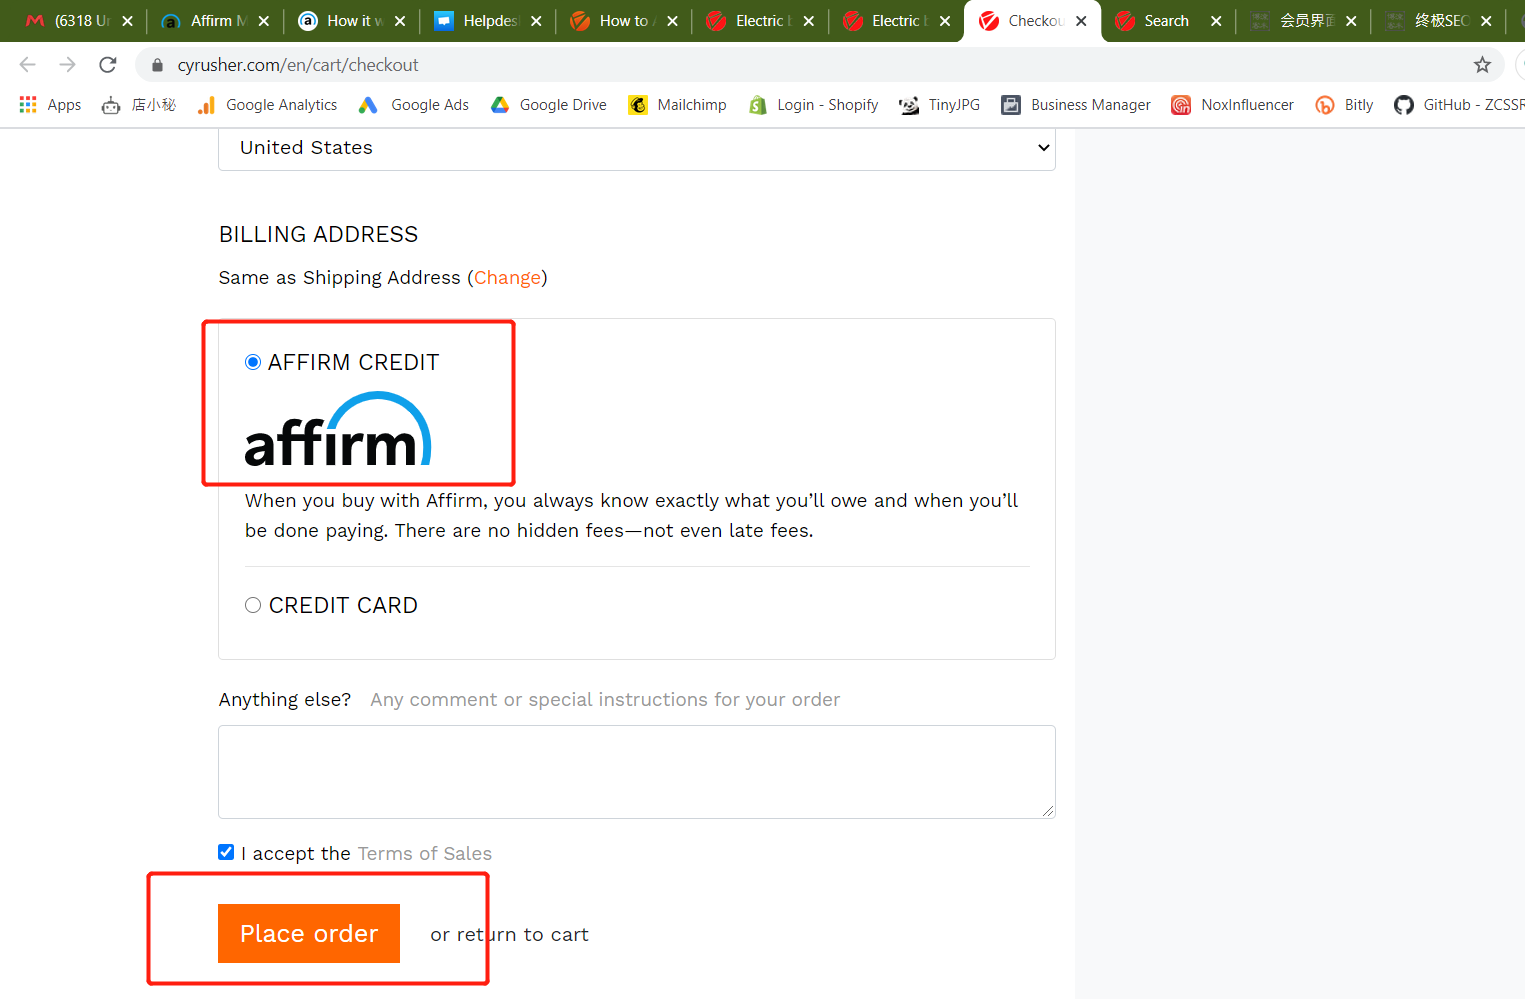 Choose Affirm to Pay